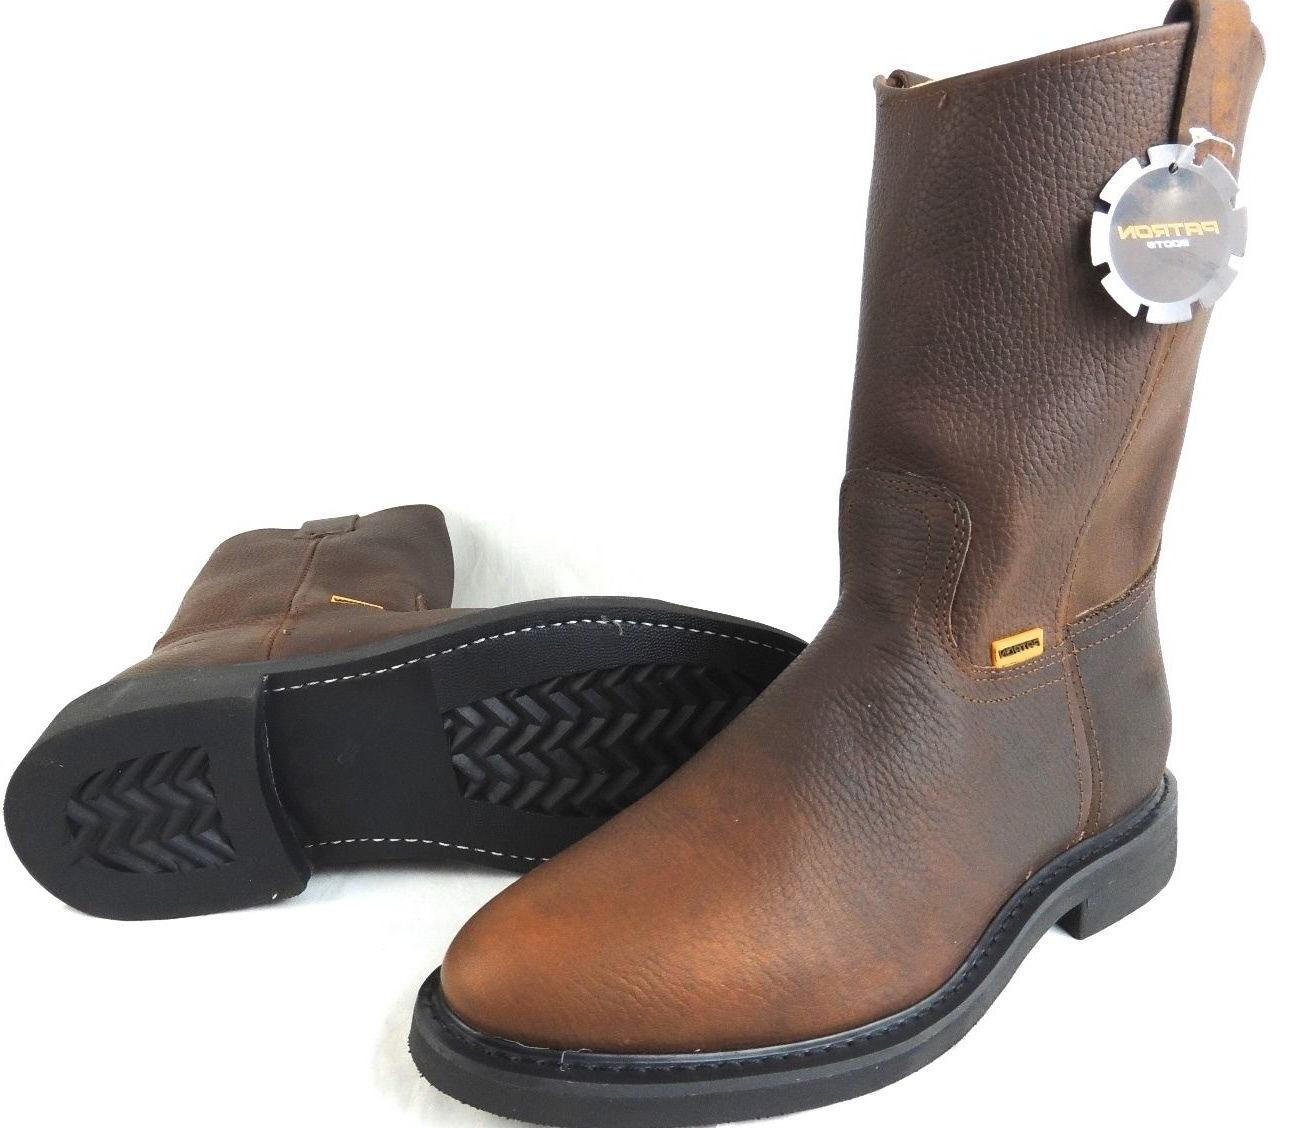 MEN'S WORK BOOTS GENUINE LEATHER PULL ON BROWN COLOR SAFETY